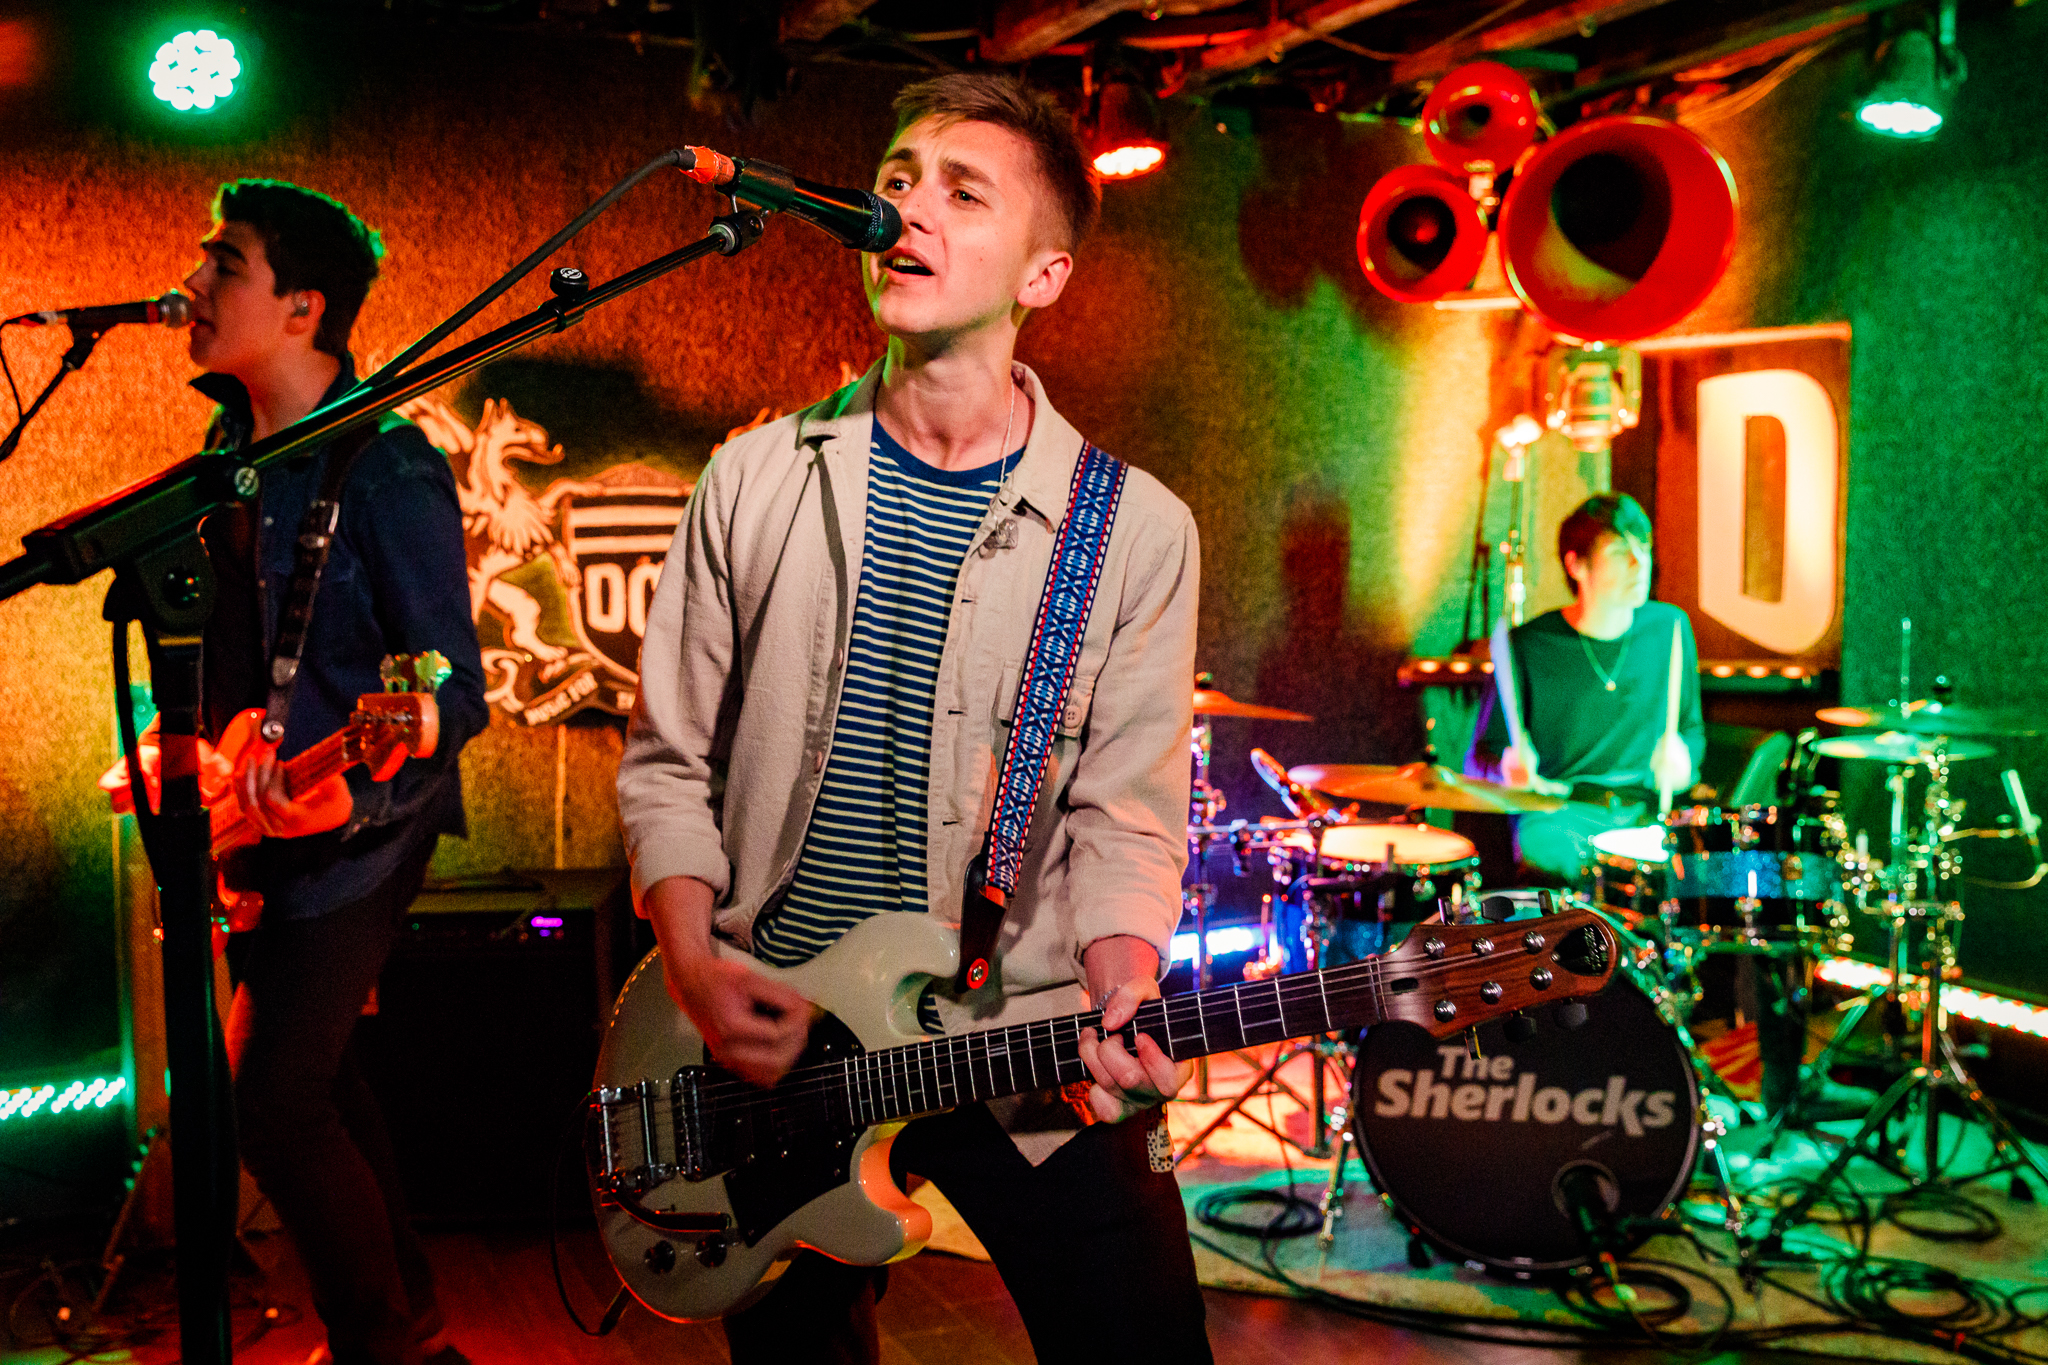 The Sherlocks performing at DC9 in Washington, DC on May 7th, 2018 (photo by Matt Condon /  @arcane93 )